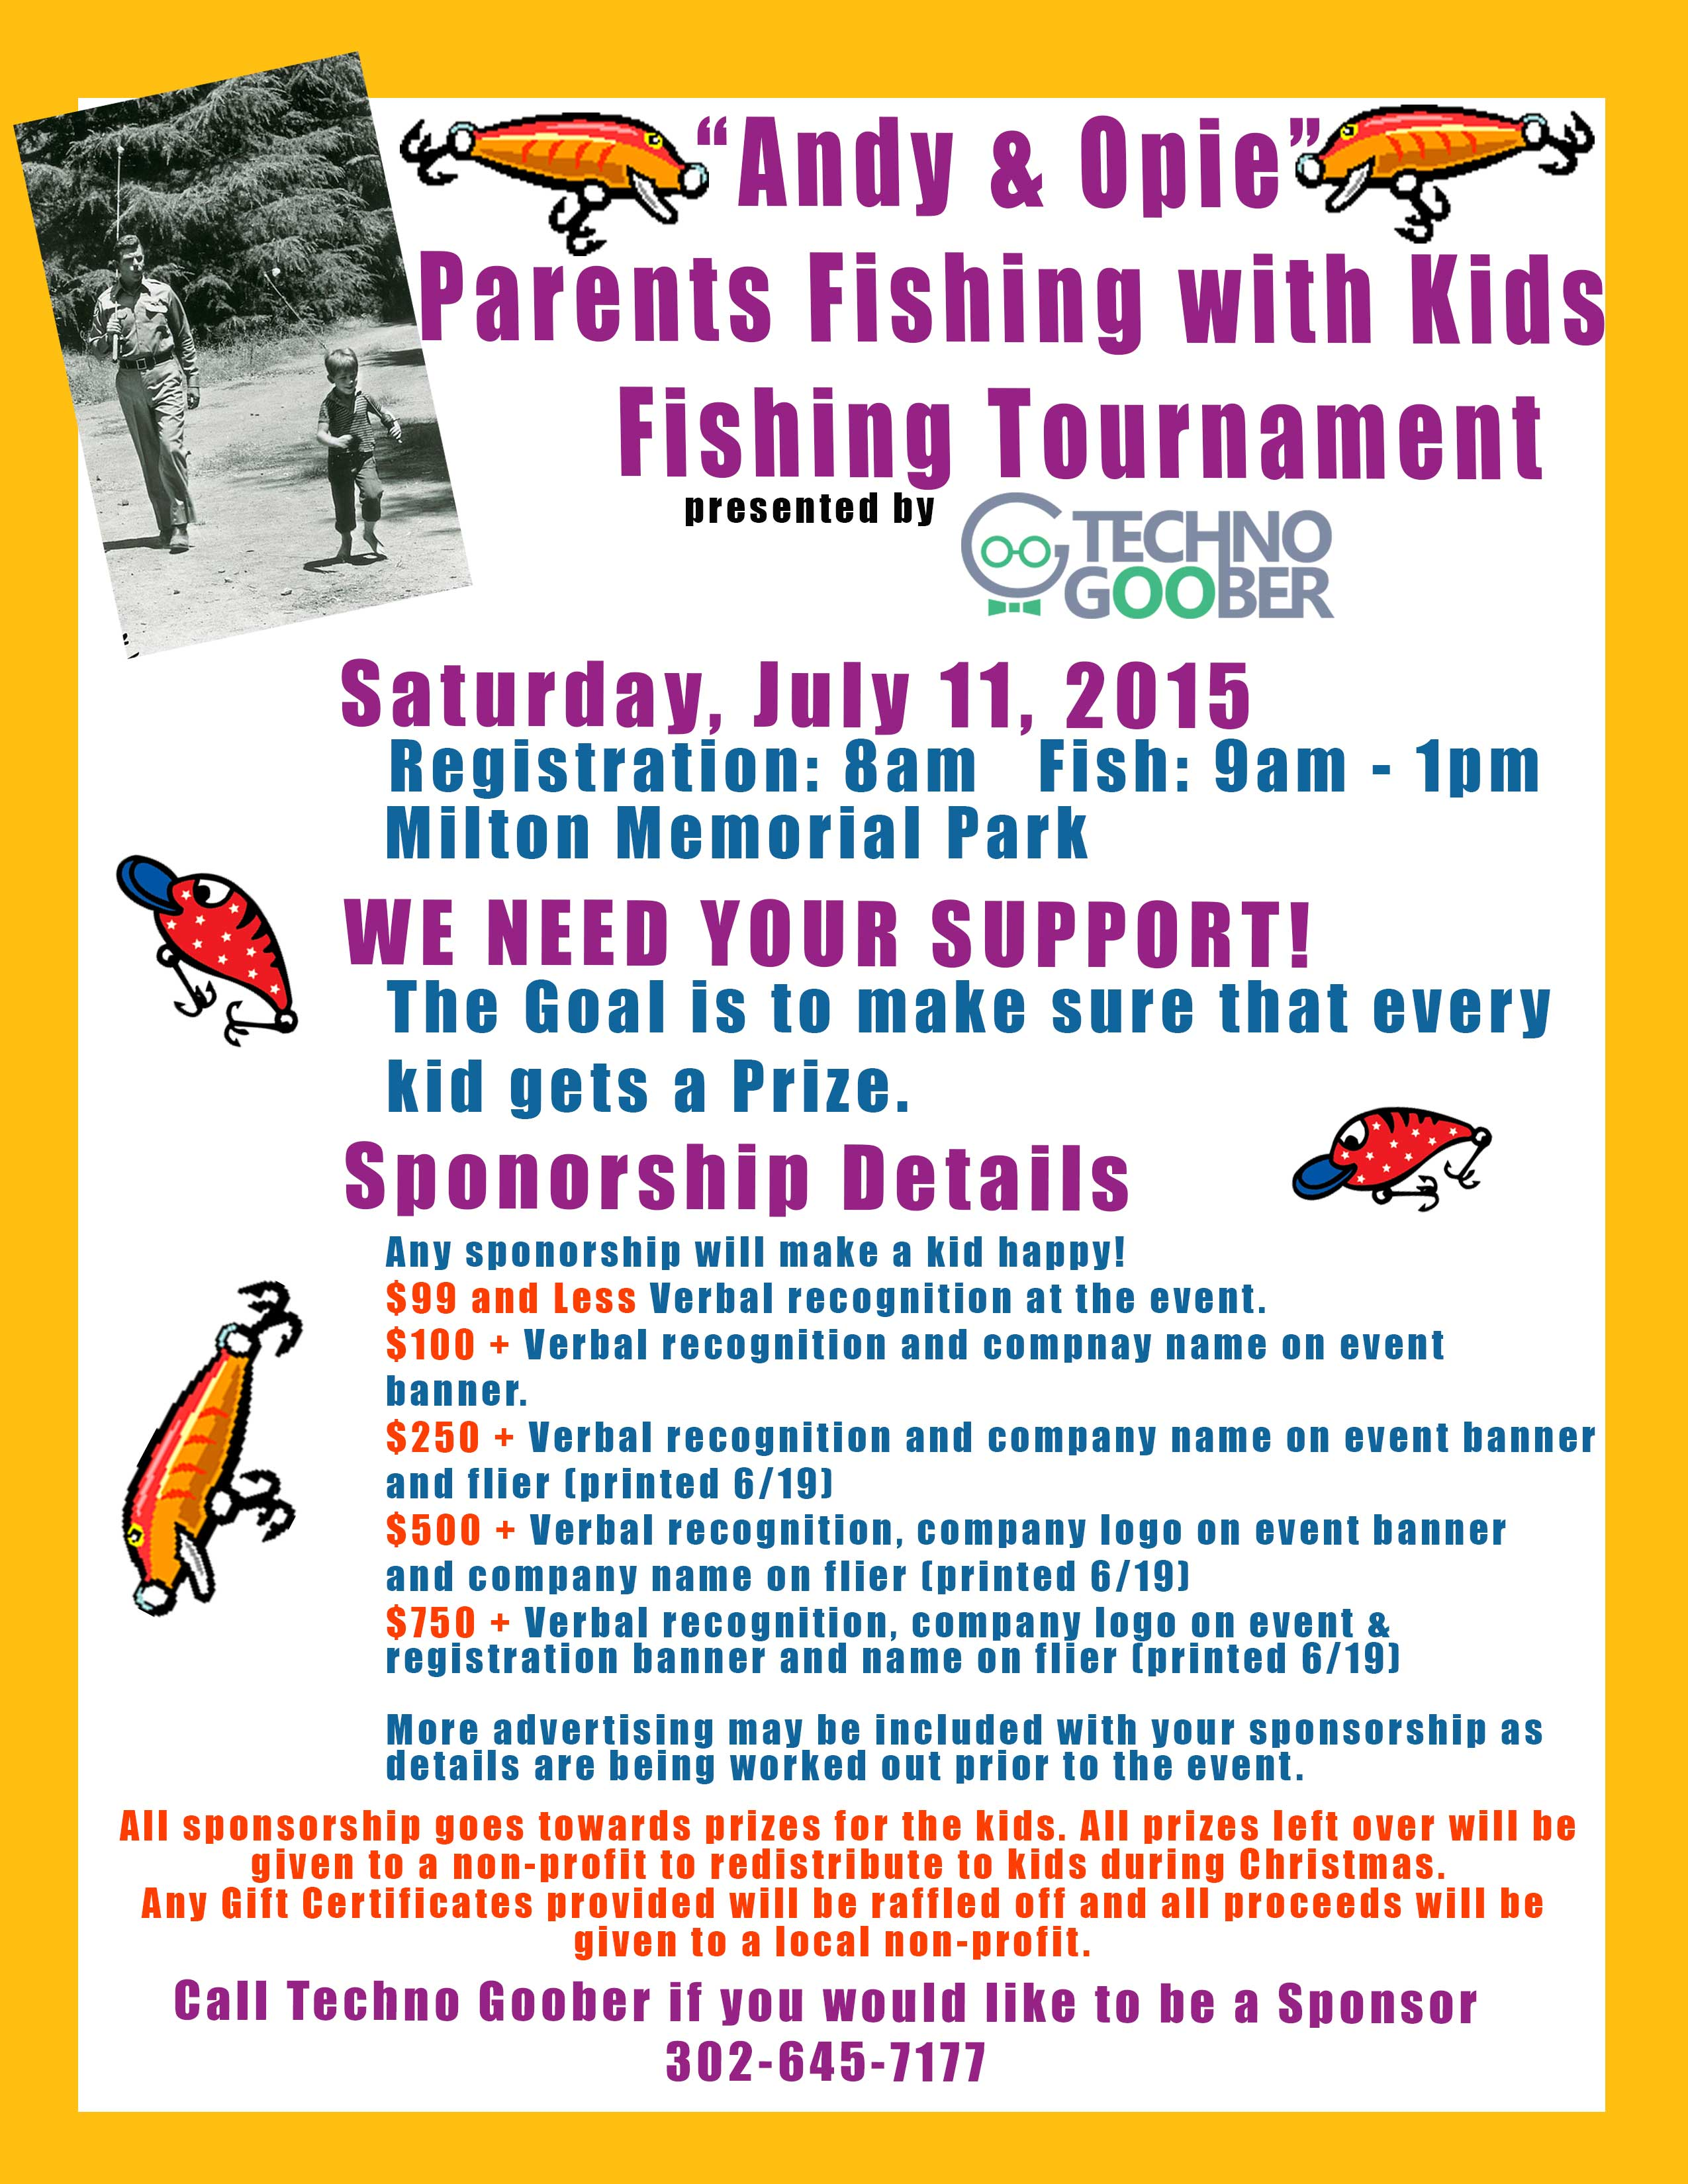 Andie opie parents fishing with kids tournament delaware surf andie opie parents fishing with kids tournament nvjuhfo Gallery